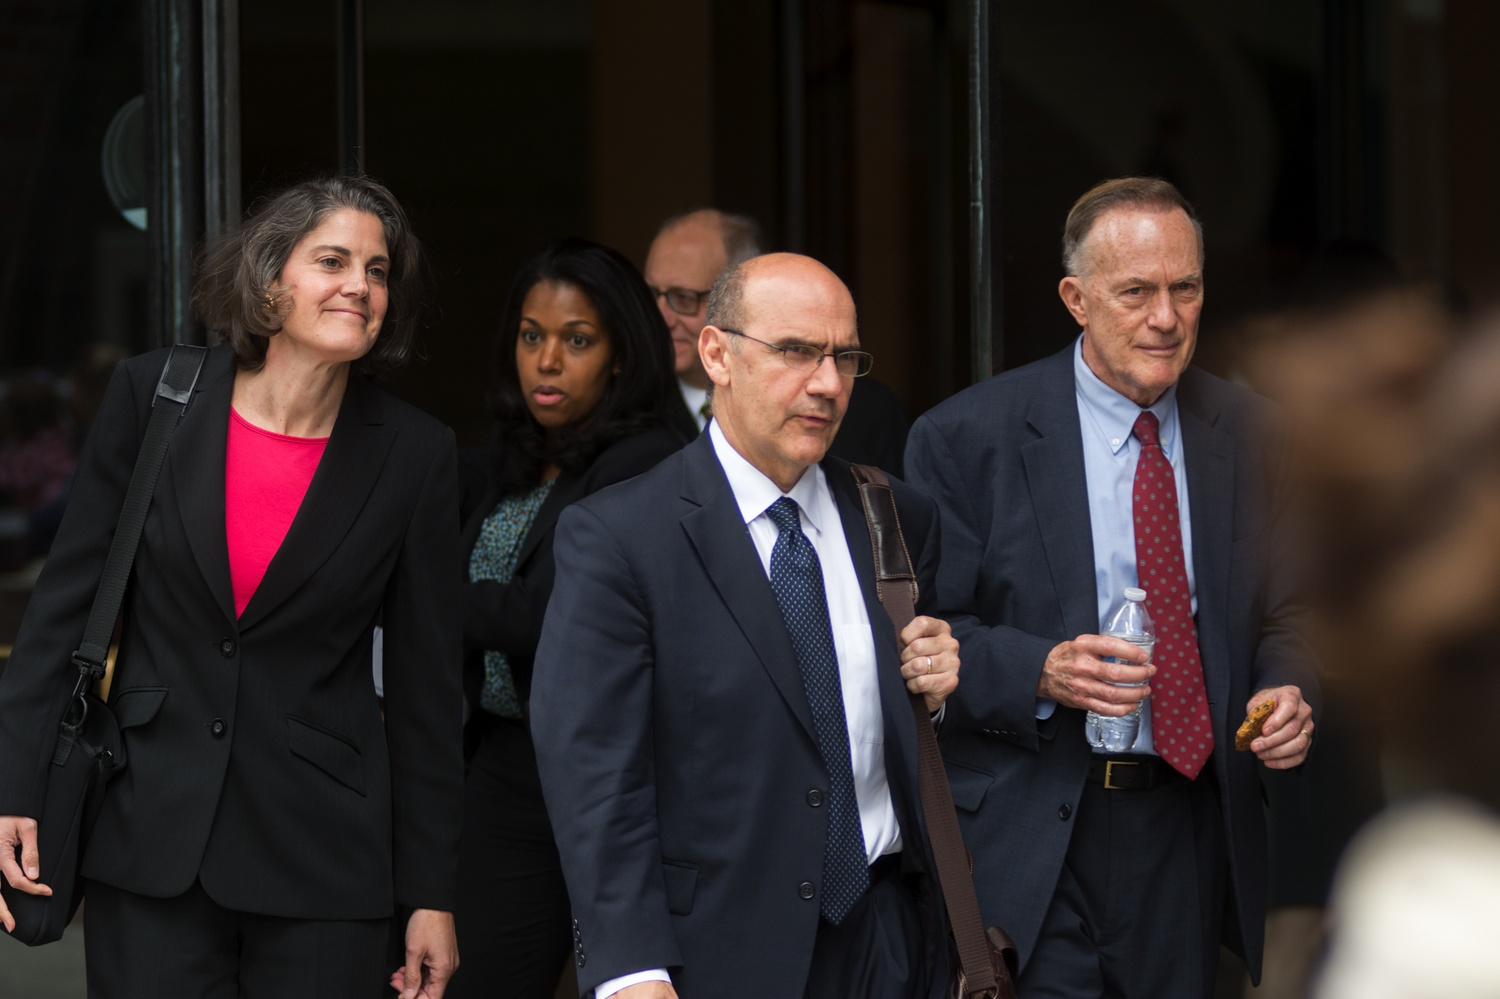 Harvard's long-serving Dean of Admissions and Financial Aid William R. Fitzsimmons '67 (far right) exits the courthouse during the admissions trial.